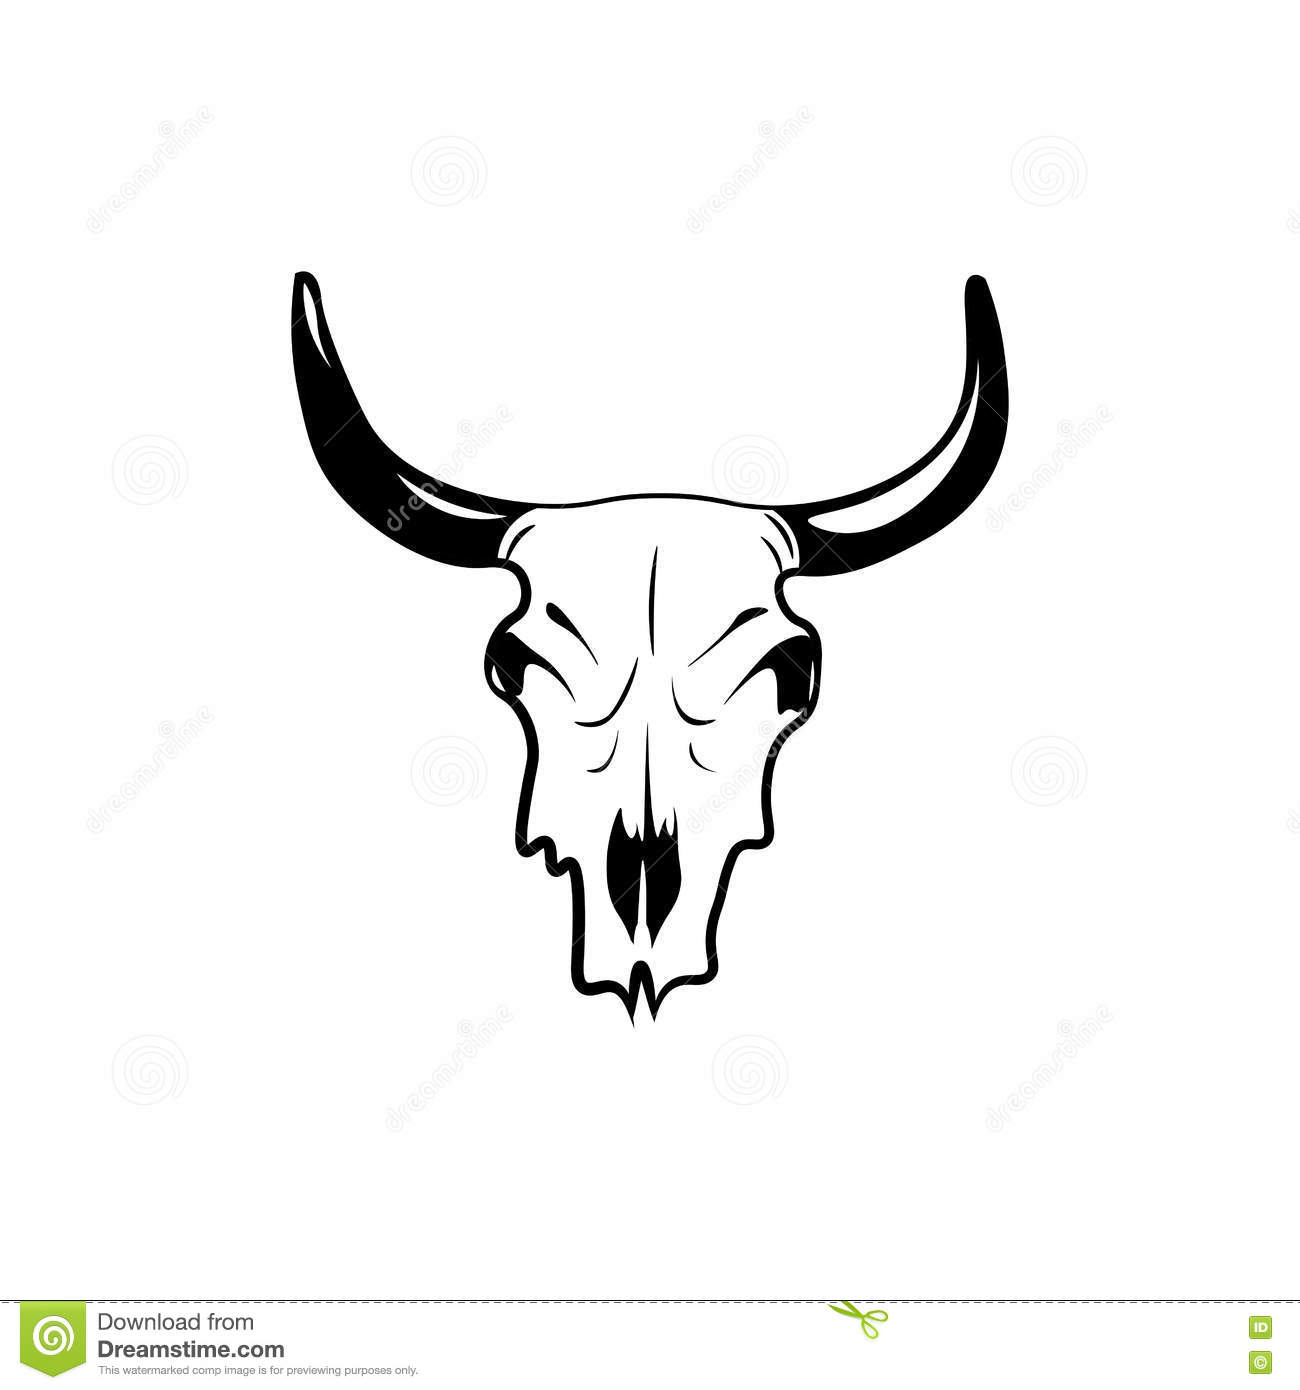 185 Cow Skull free clipart.